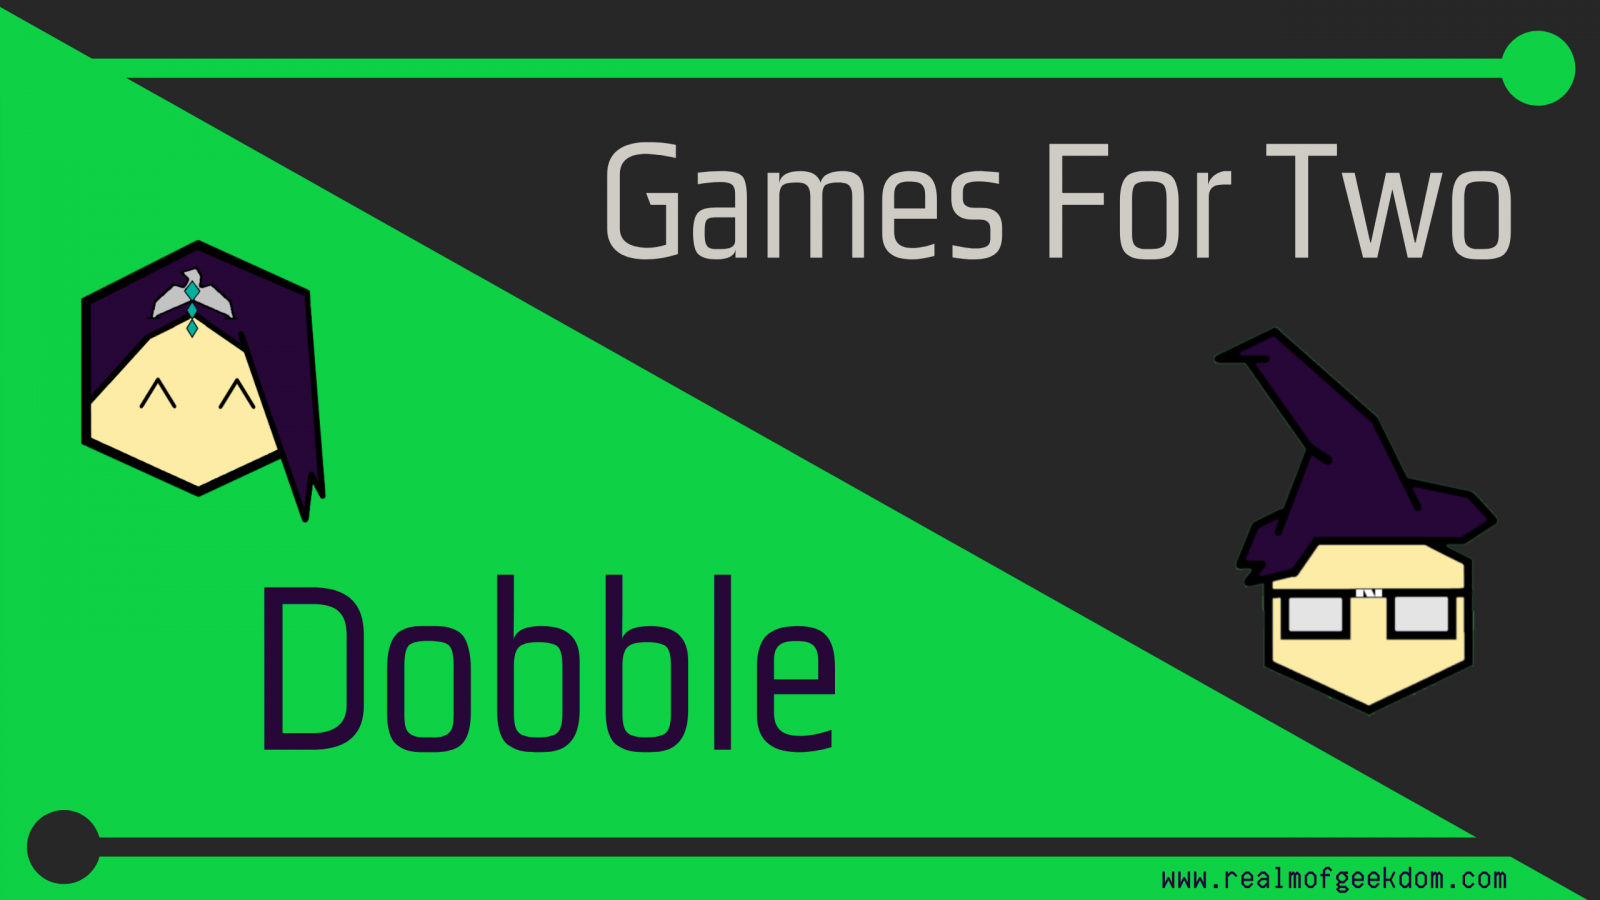 Games for two title image - dobble